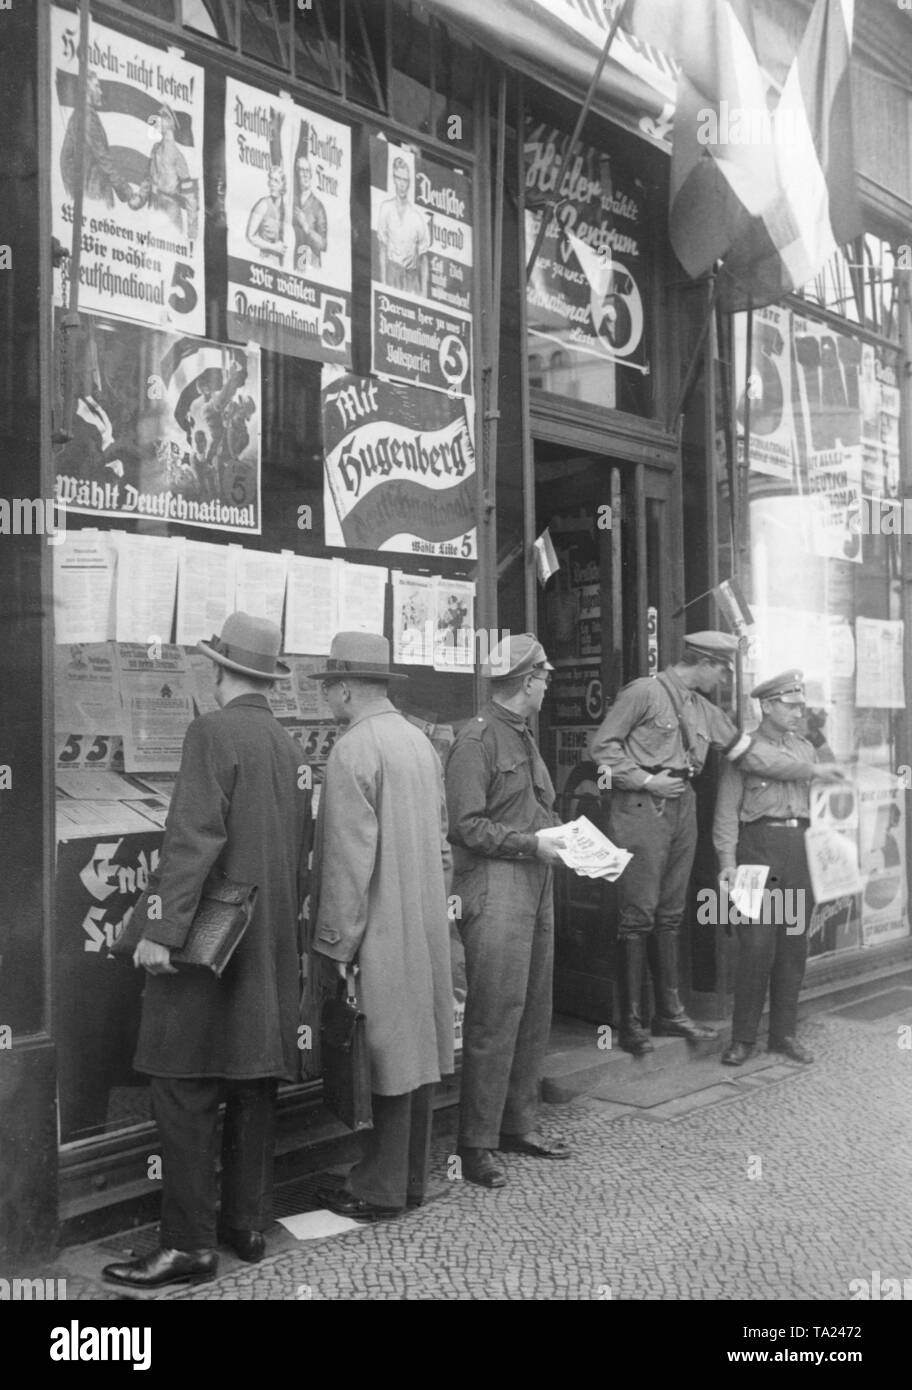 In the run-up to the Reichstag election in July, 1932, election campaigners of the DNVP (German National People's Party) distributed ballots in front of the party's propaganda shop in Neue Wilhelmstrasse 3. There are election posters displayed in the shop windows. Stock Photo